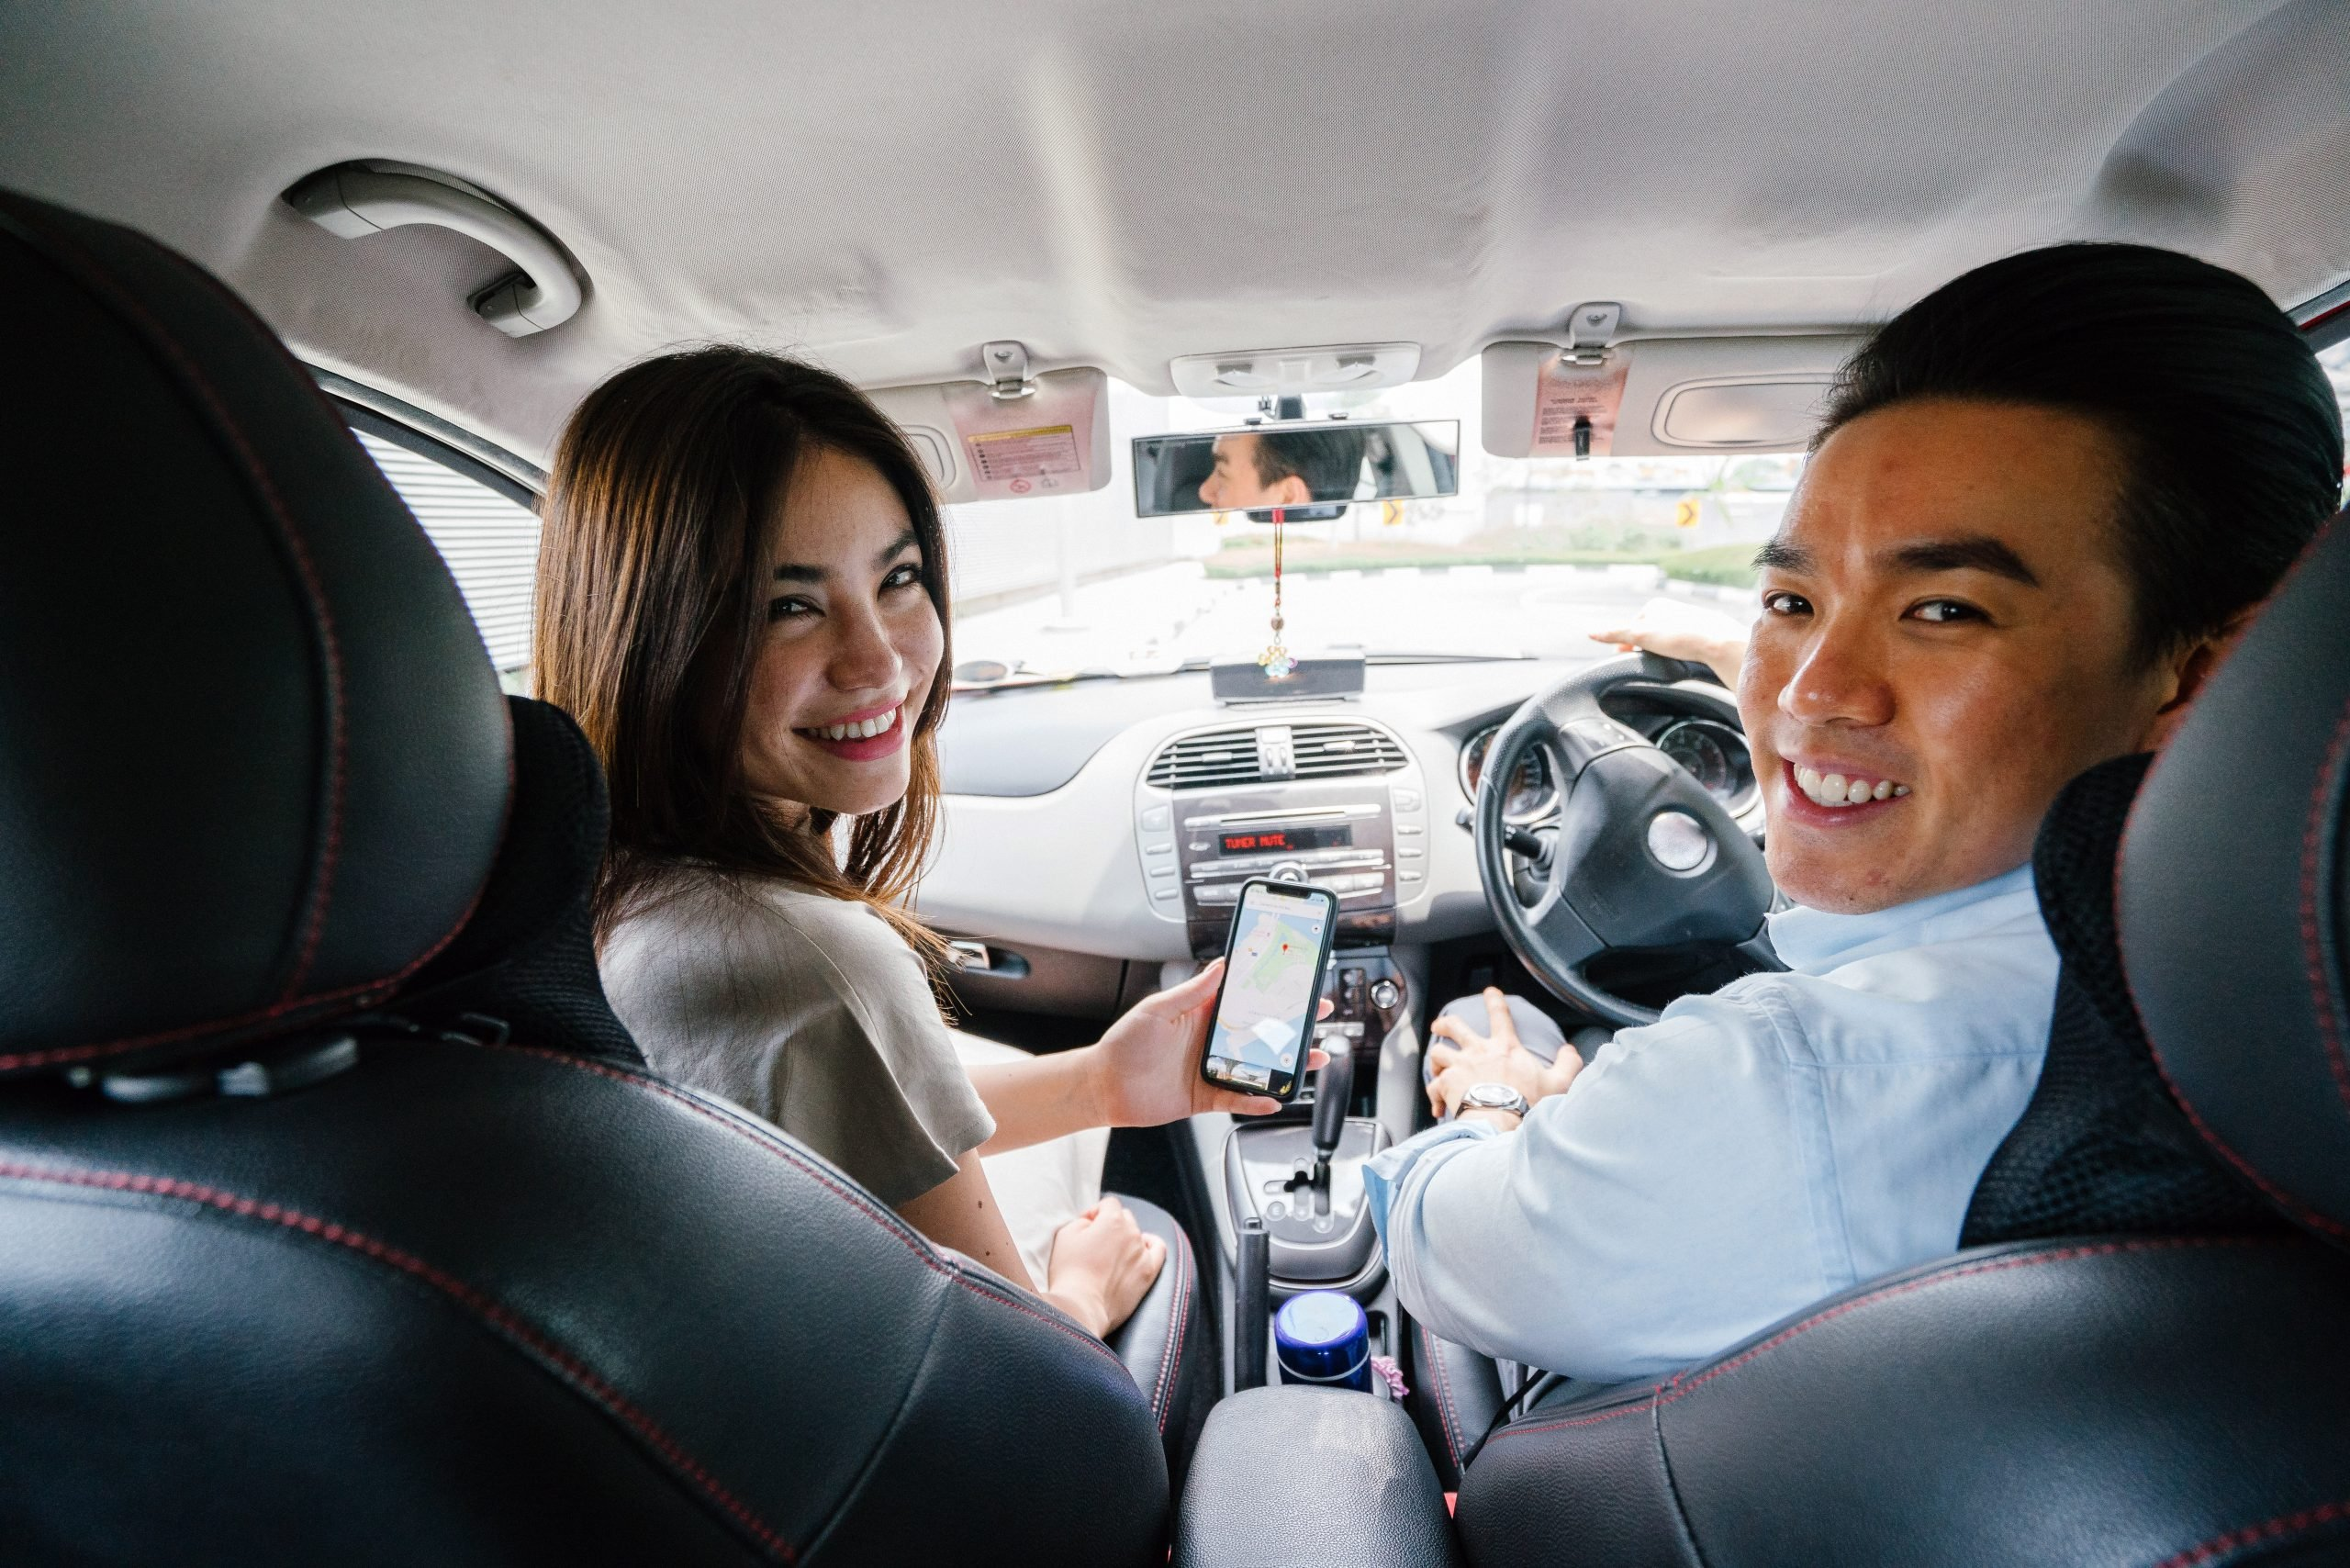 smiling-man-and-woman-sitting-inside-vehicle-1399287